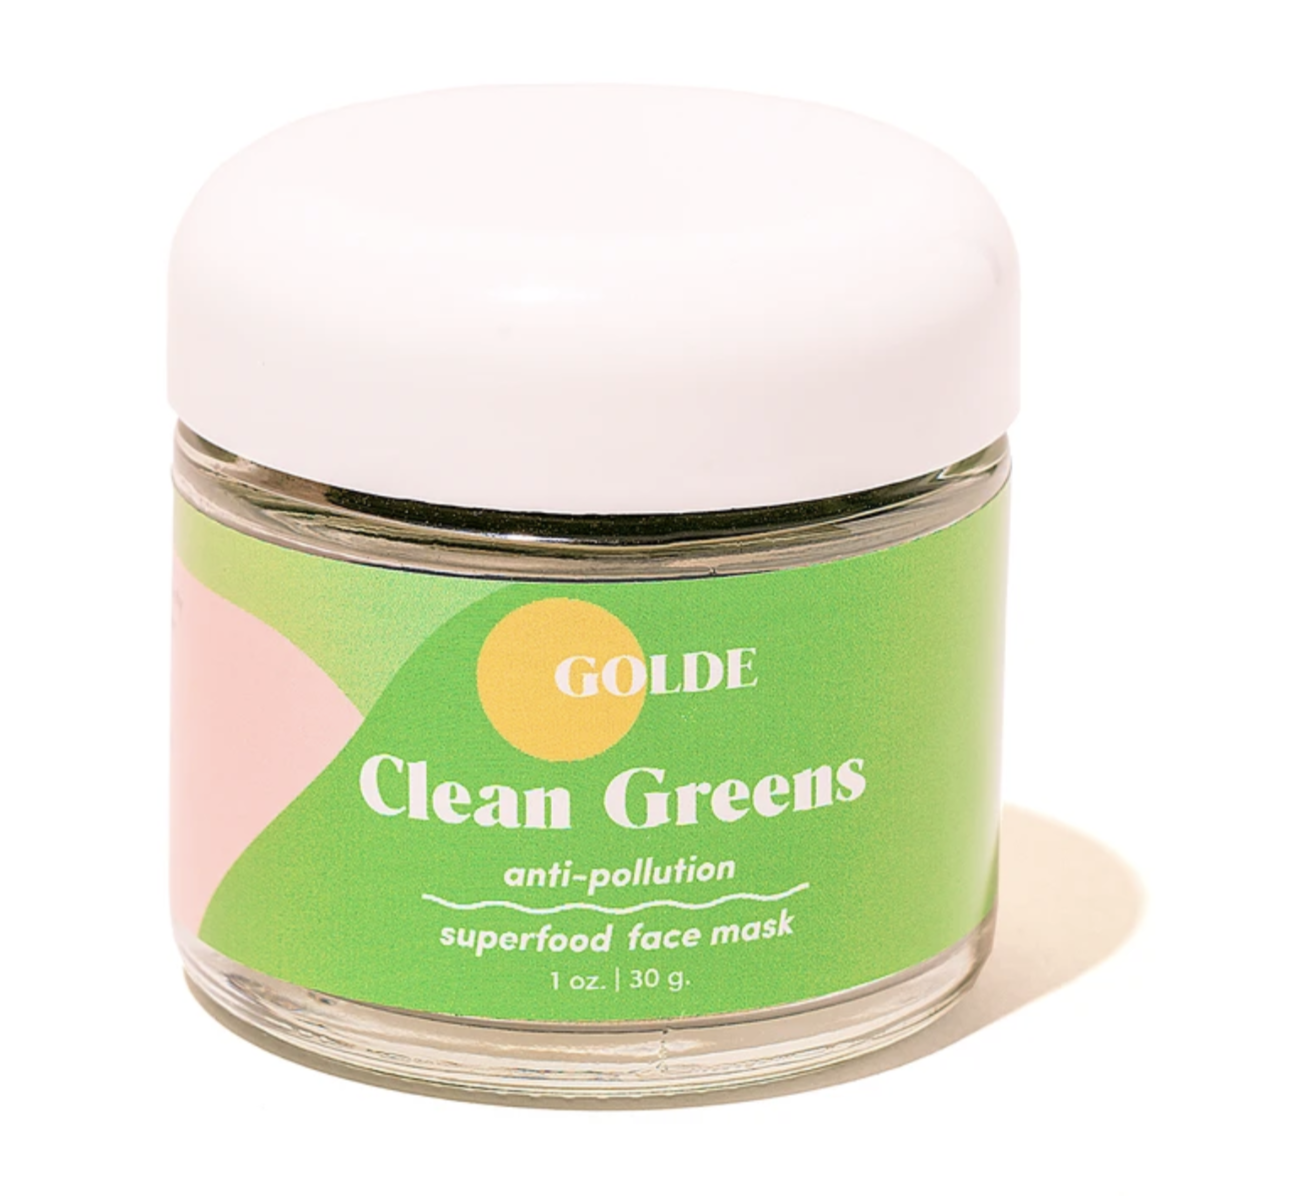 Bottle of clean greens superfood face mask